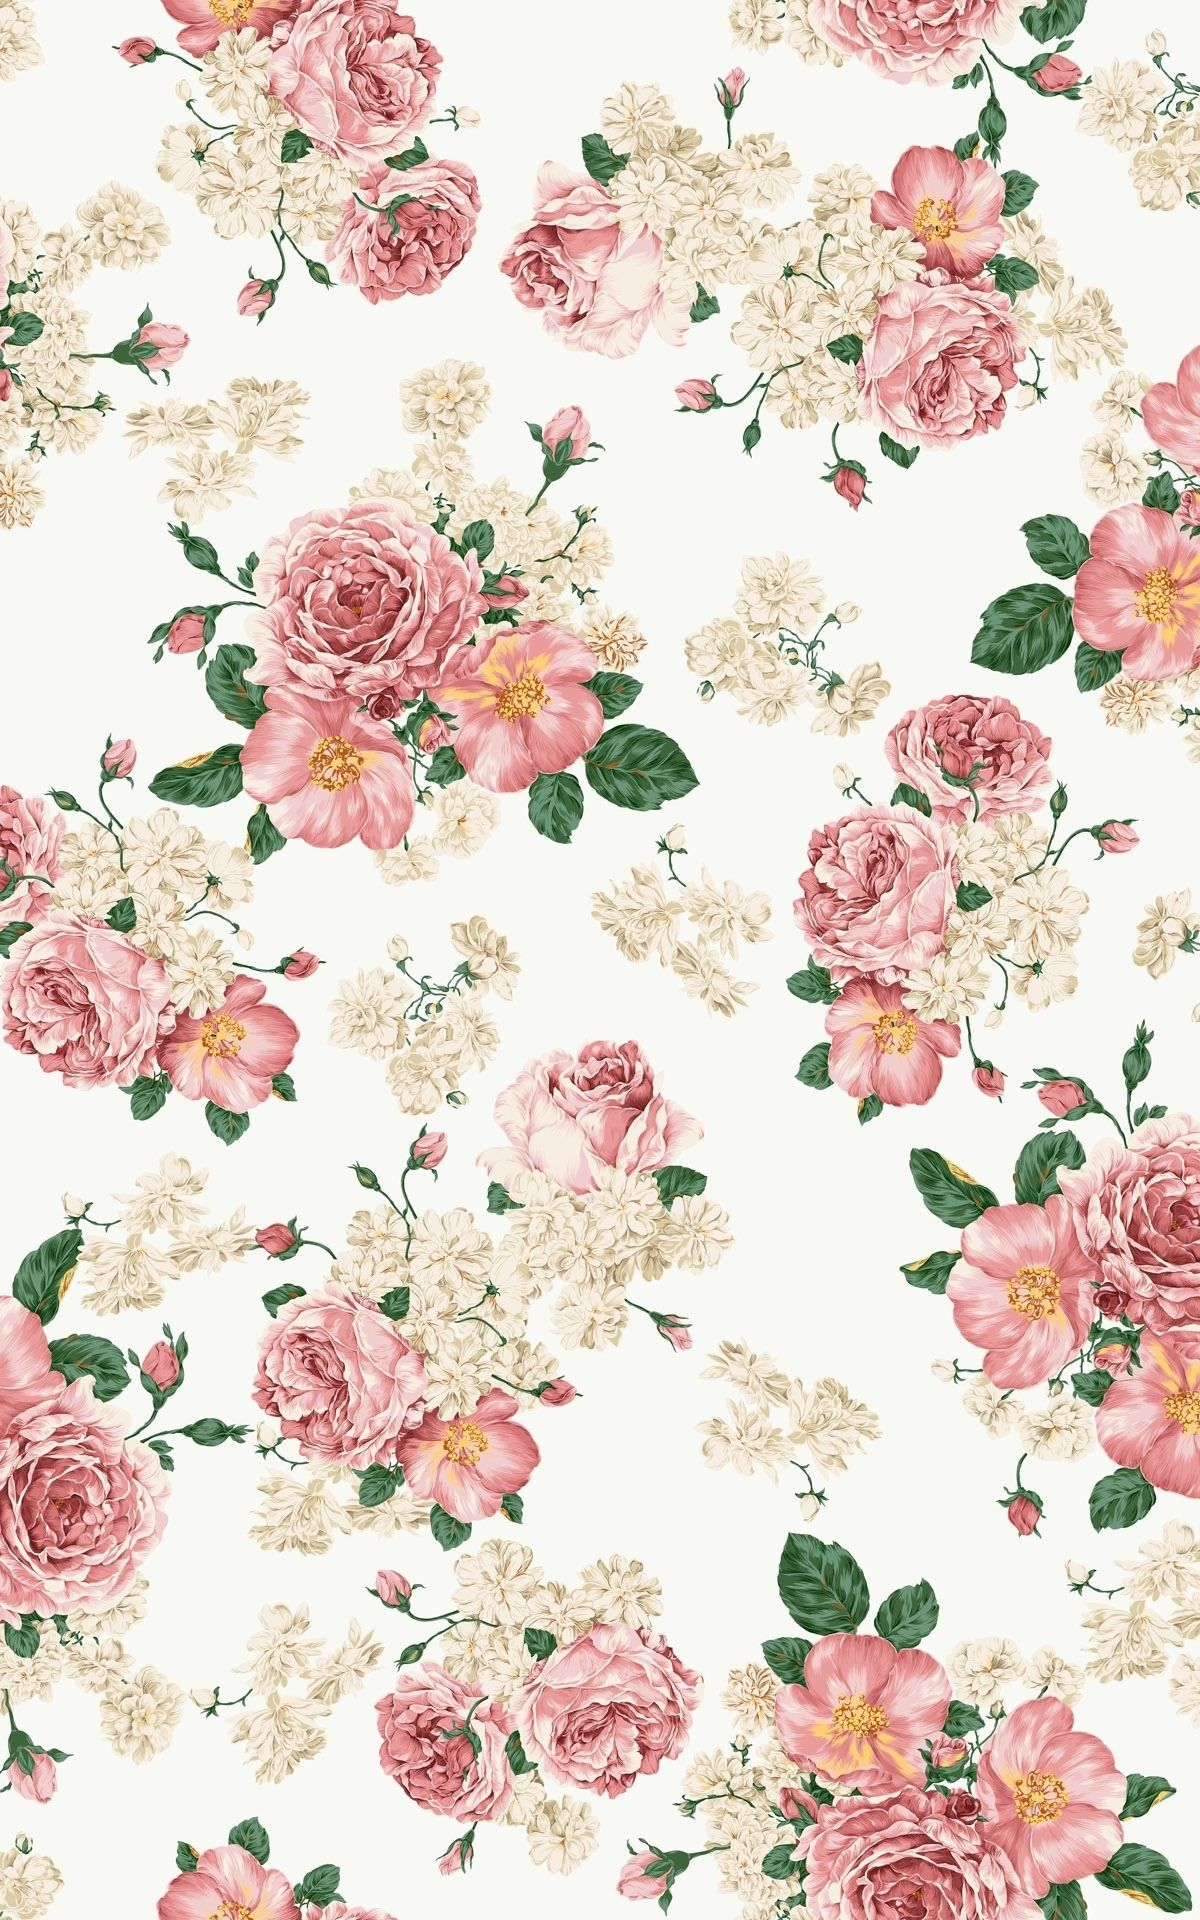 Vintage Flowers Wallpaper 1200 1920 For Ipad Pro Floral